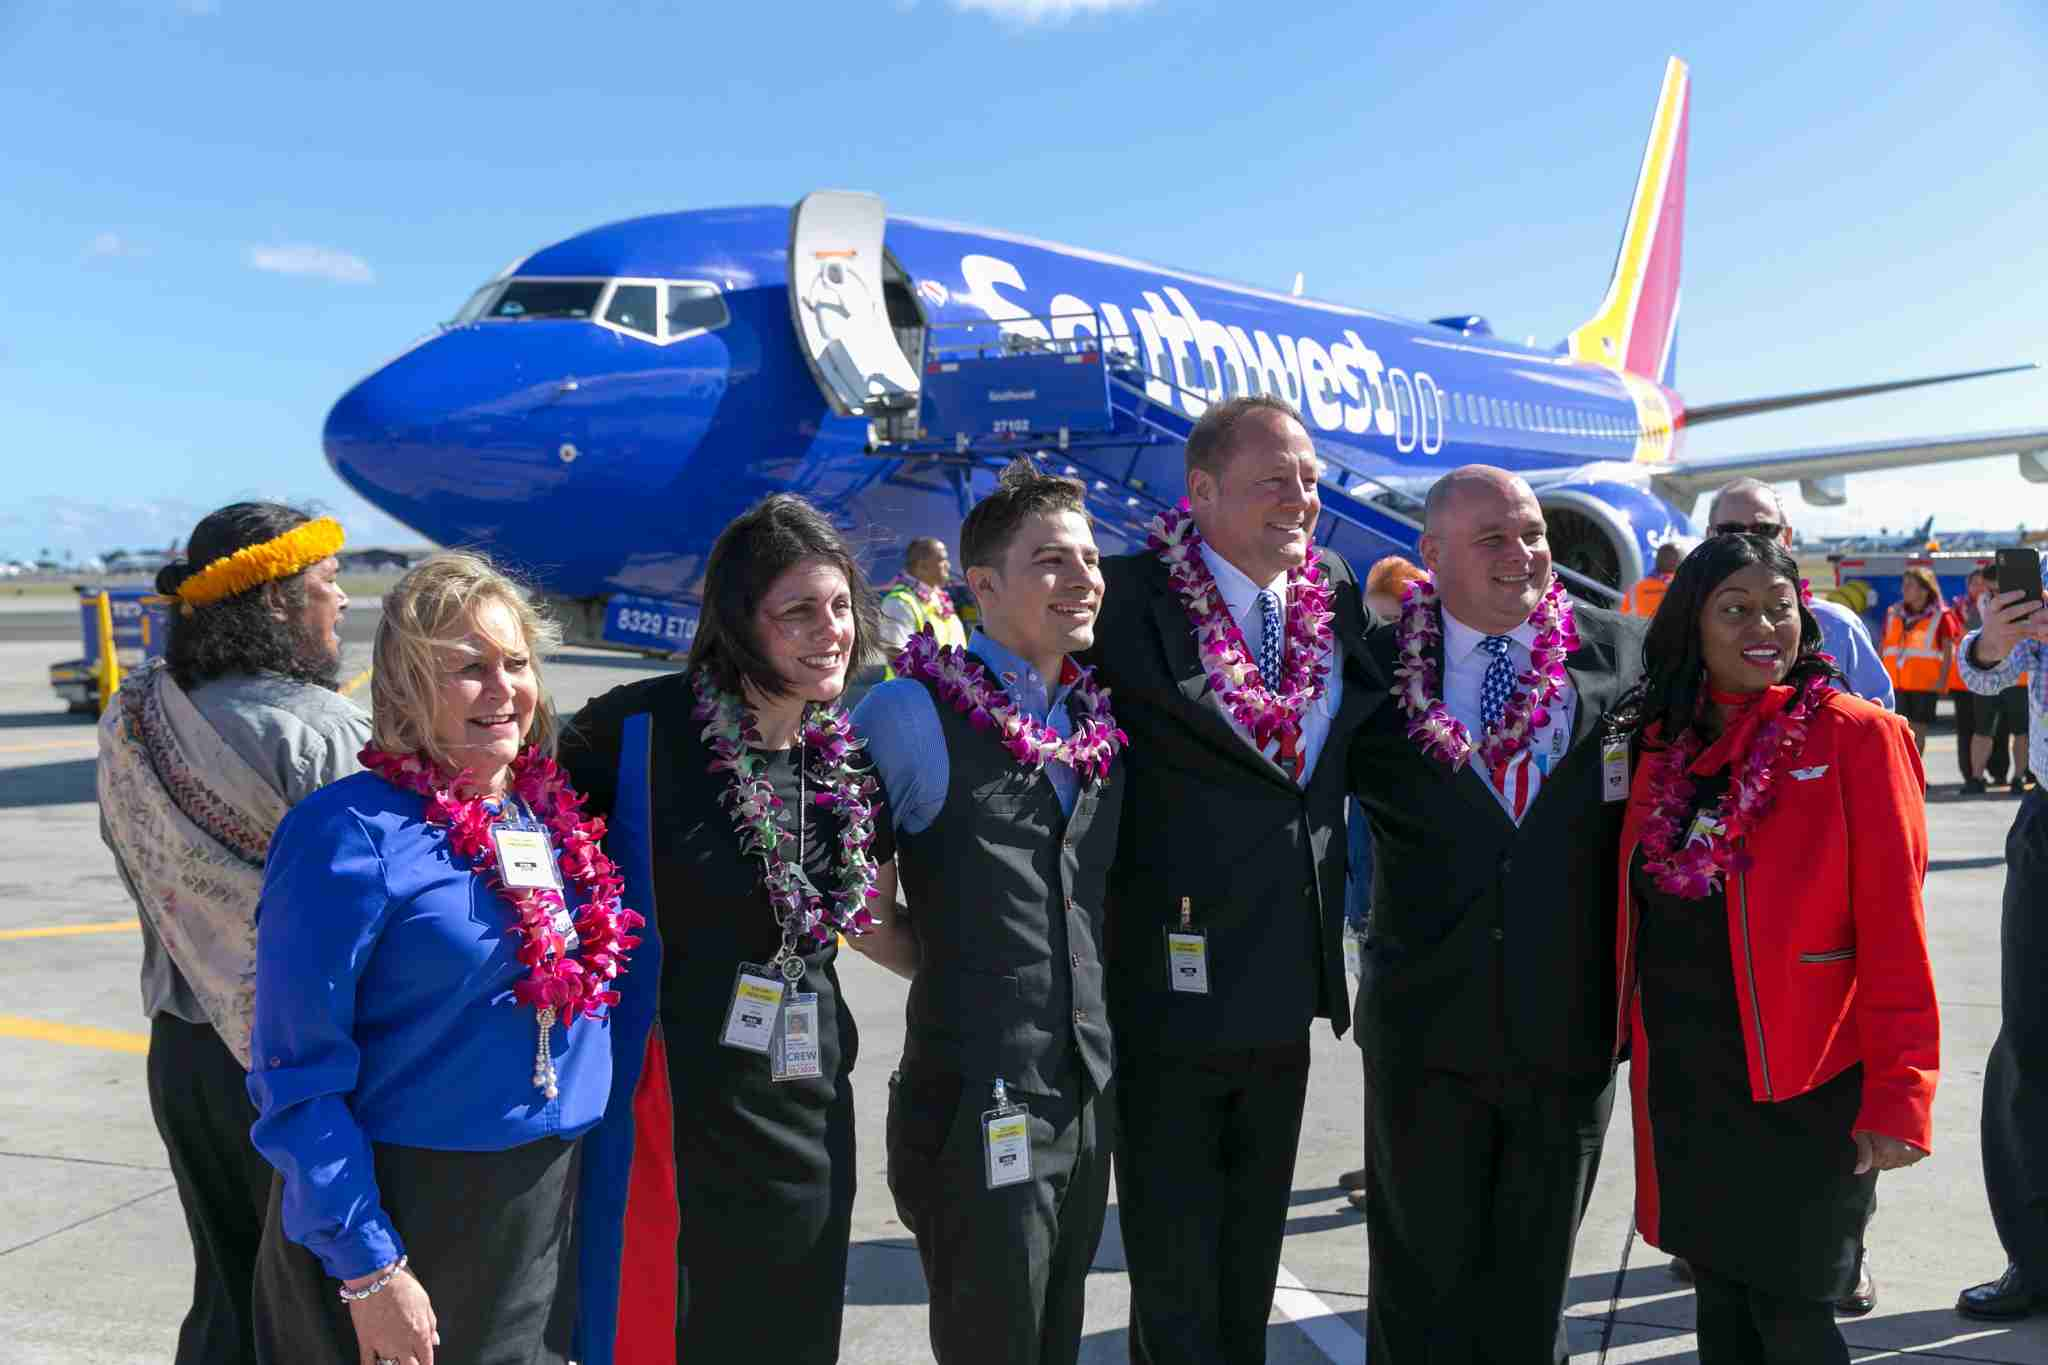 Southwest Airlines crew celebrate after landing for the first time at the Honolulu International Airport, Tuesday, February 5, 2019, in Honolulu. (Marco Garcia/The Points Guy)